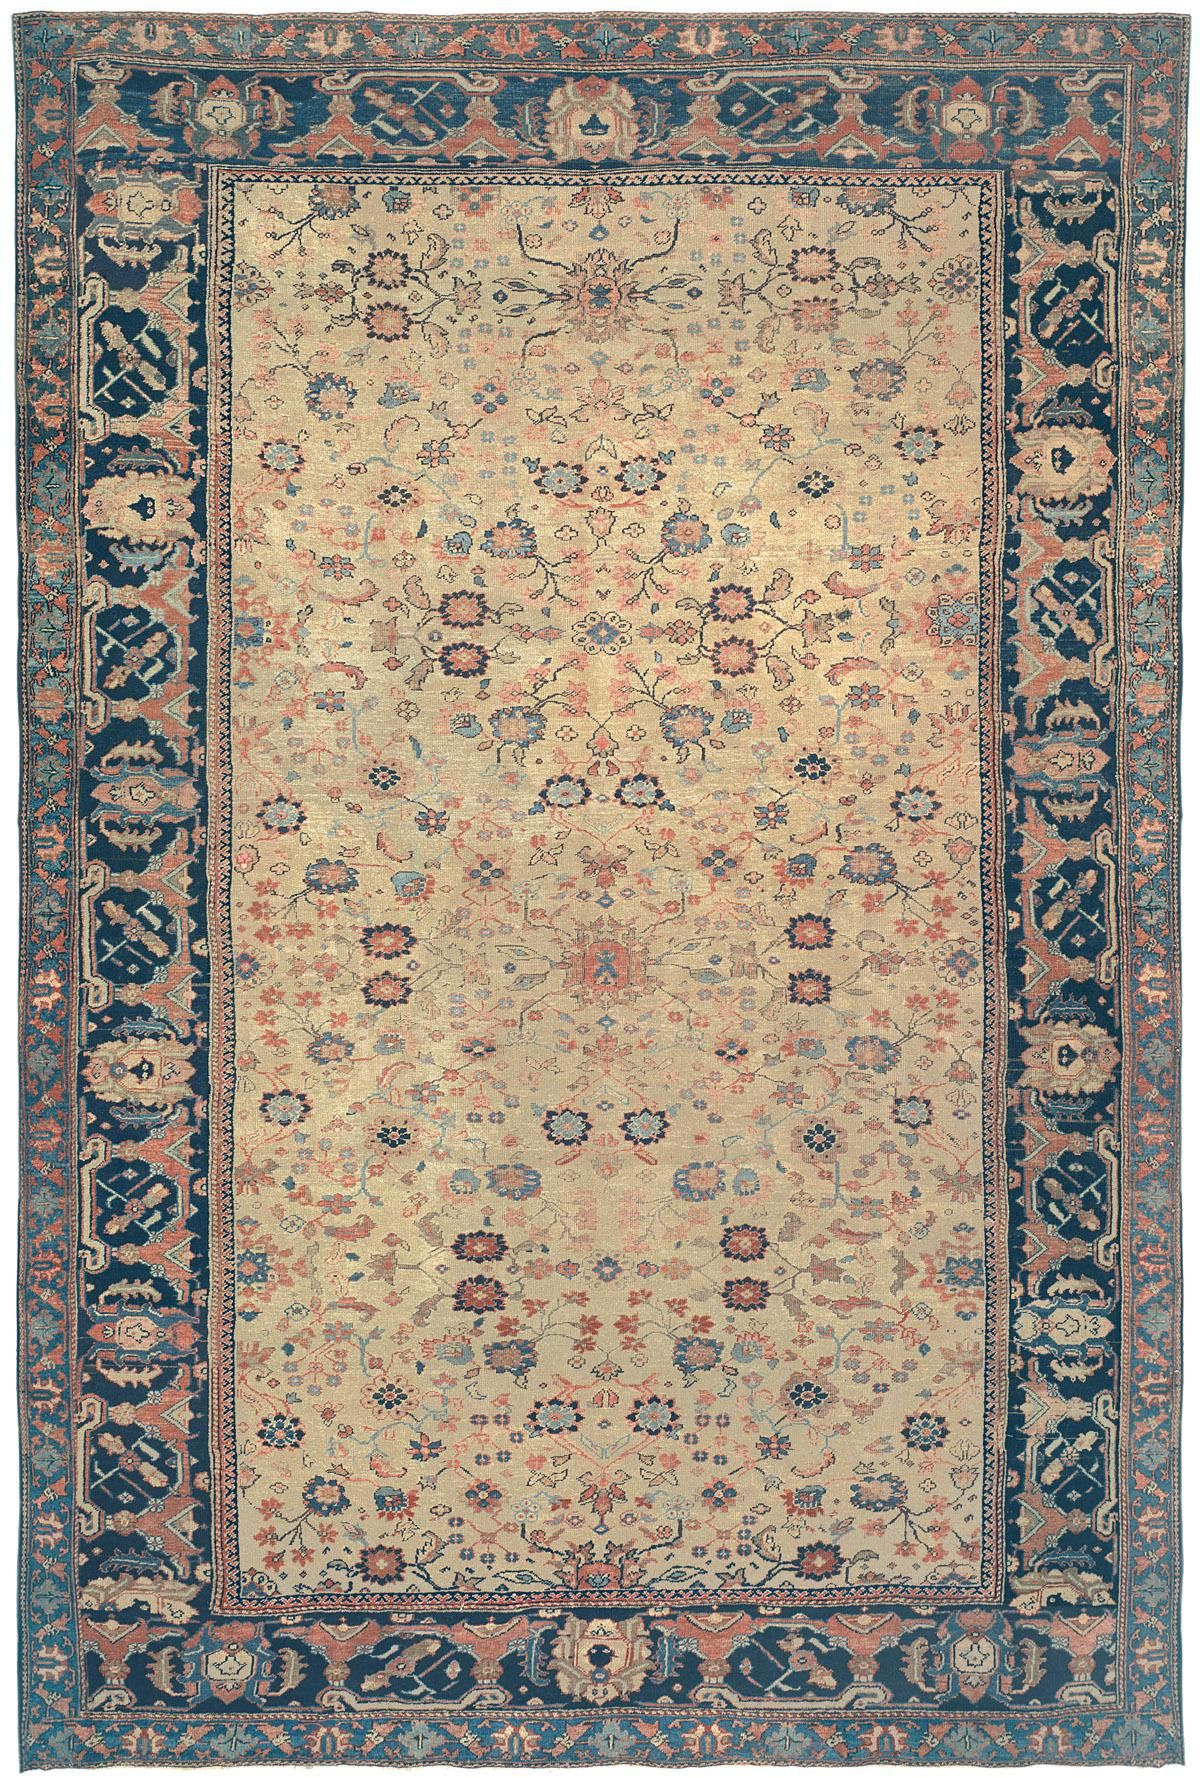 Sultanabad, 9ft 4in x 13ft 9in, 3rd Quarter, 19th Century. One of the most astonishing oriental carpets in the Hudson River Valley collection is this extraordinarily innovative antique Sultanabad. An artfully chosen, naturally dyed, golden wheat tone provides a glowing backdrop for its field populated by asymmetrically placed, continually changing blossom and vinery motifs. The traditional Persian border format is abandoned, as the two secondary borders bear no resemblance in design or size.